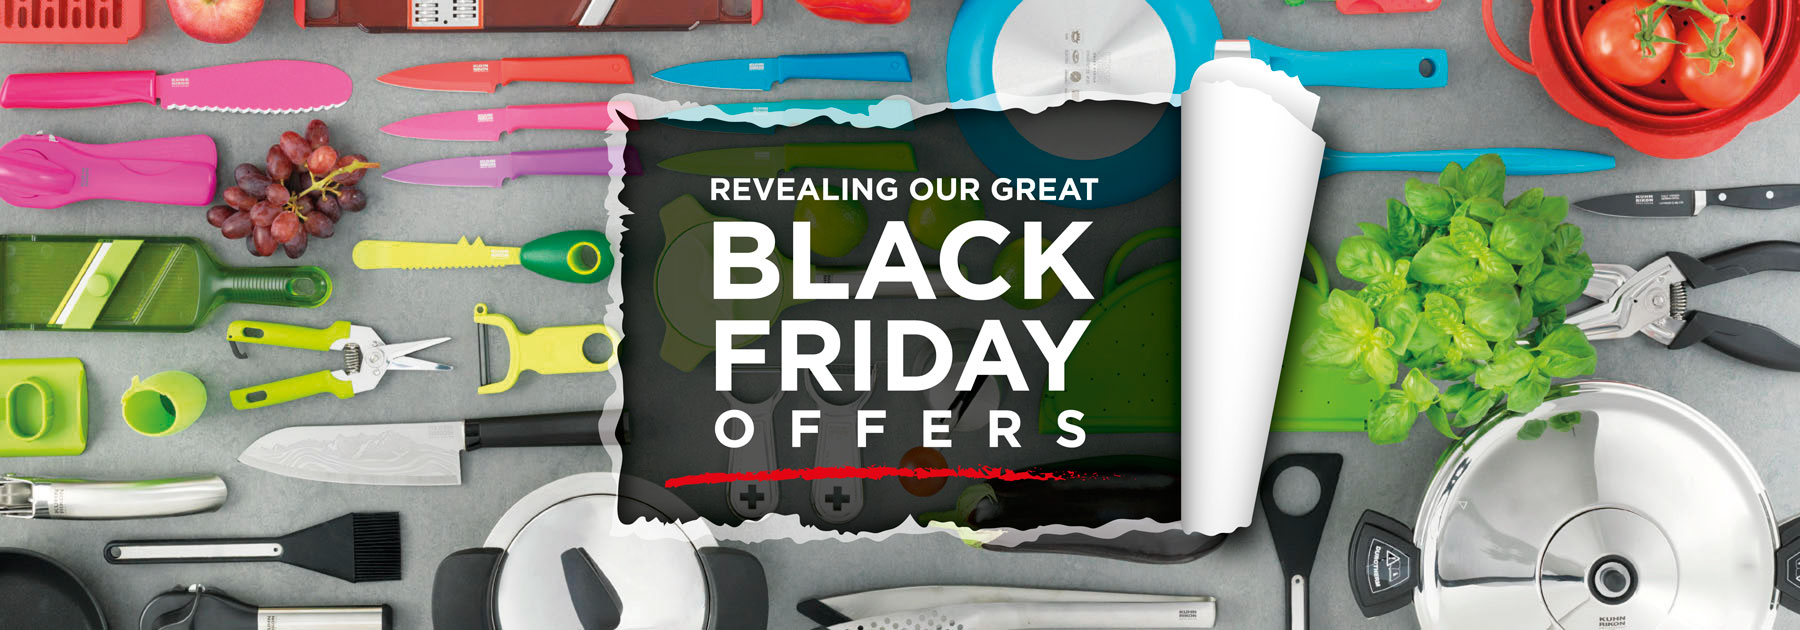 Black Friday, offers, promotions, discounts, cookware, frying, pans, Pressure Cookers, knives, complete range